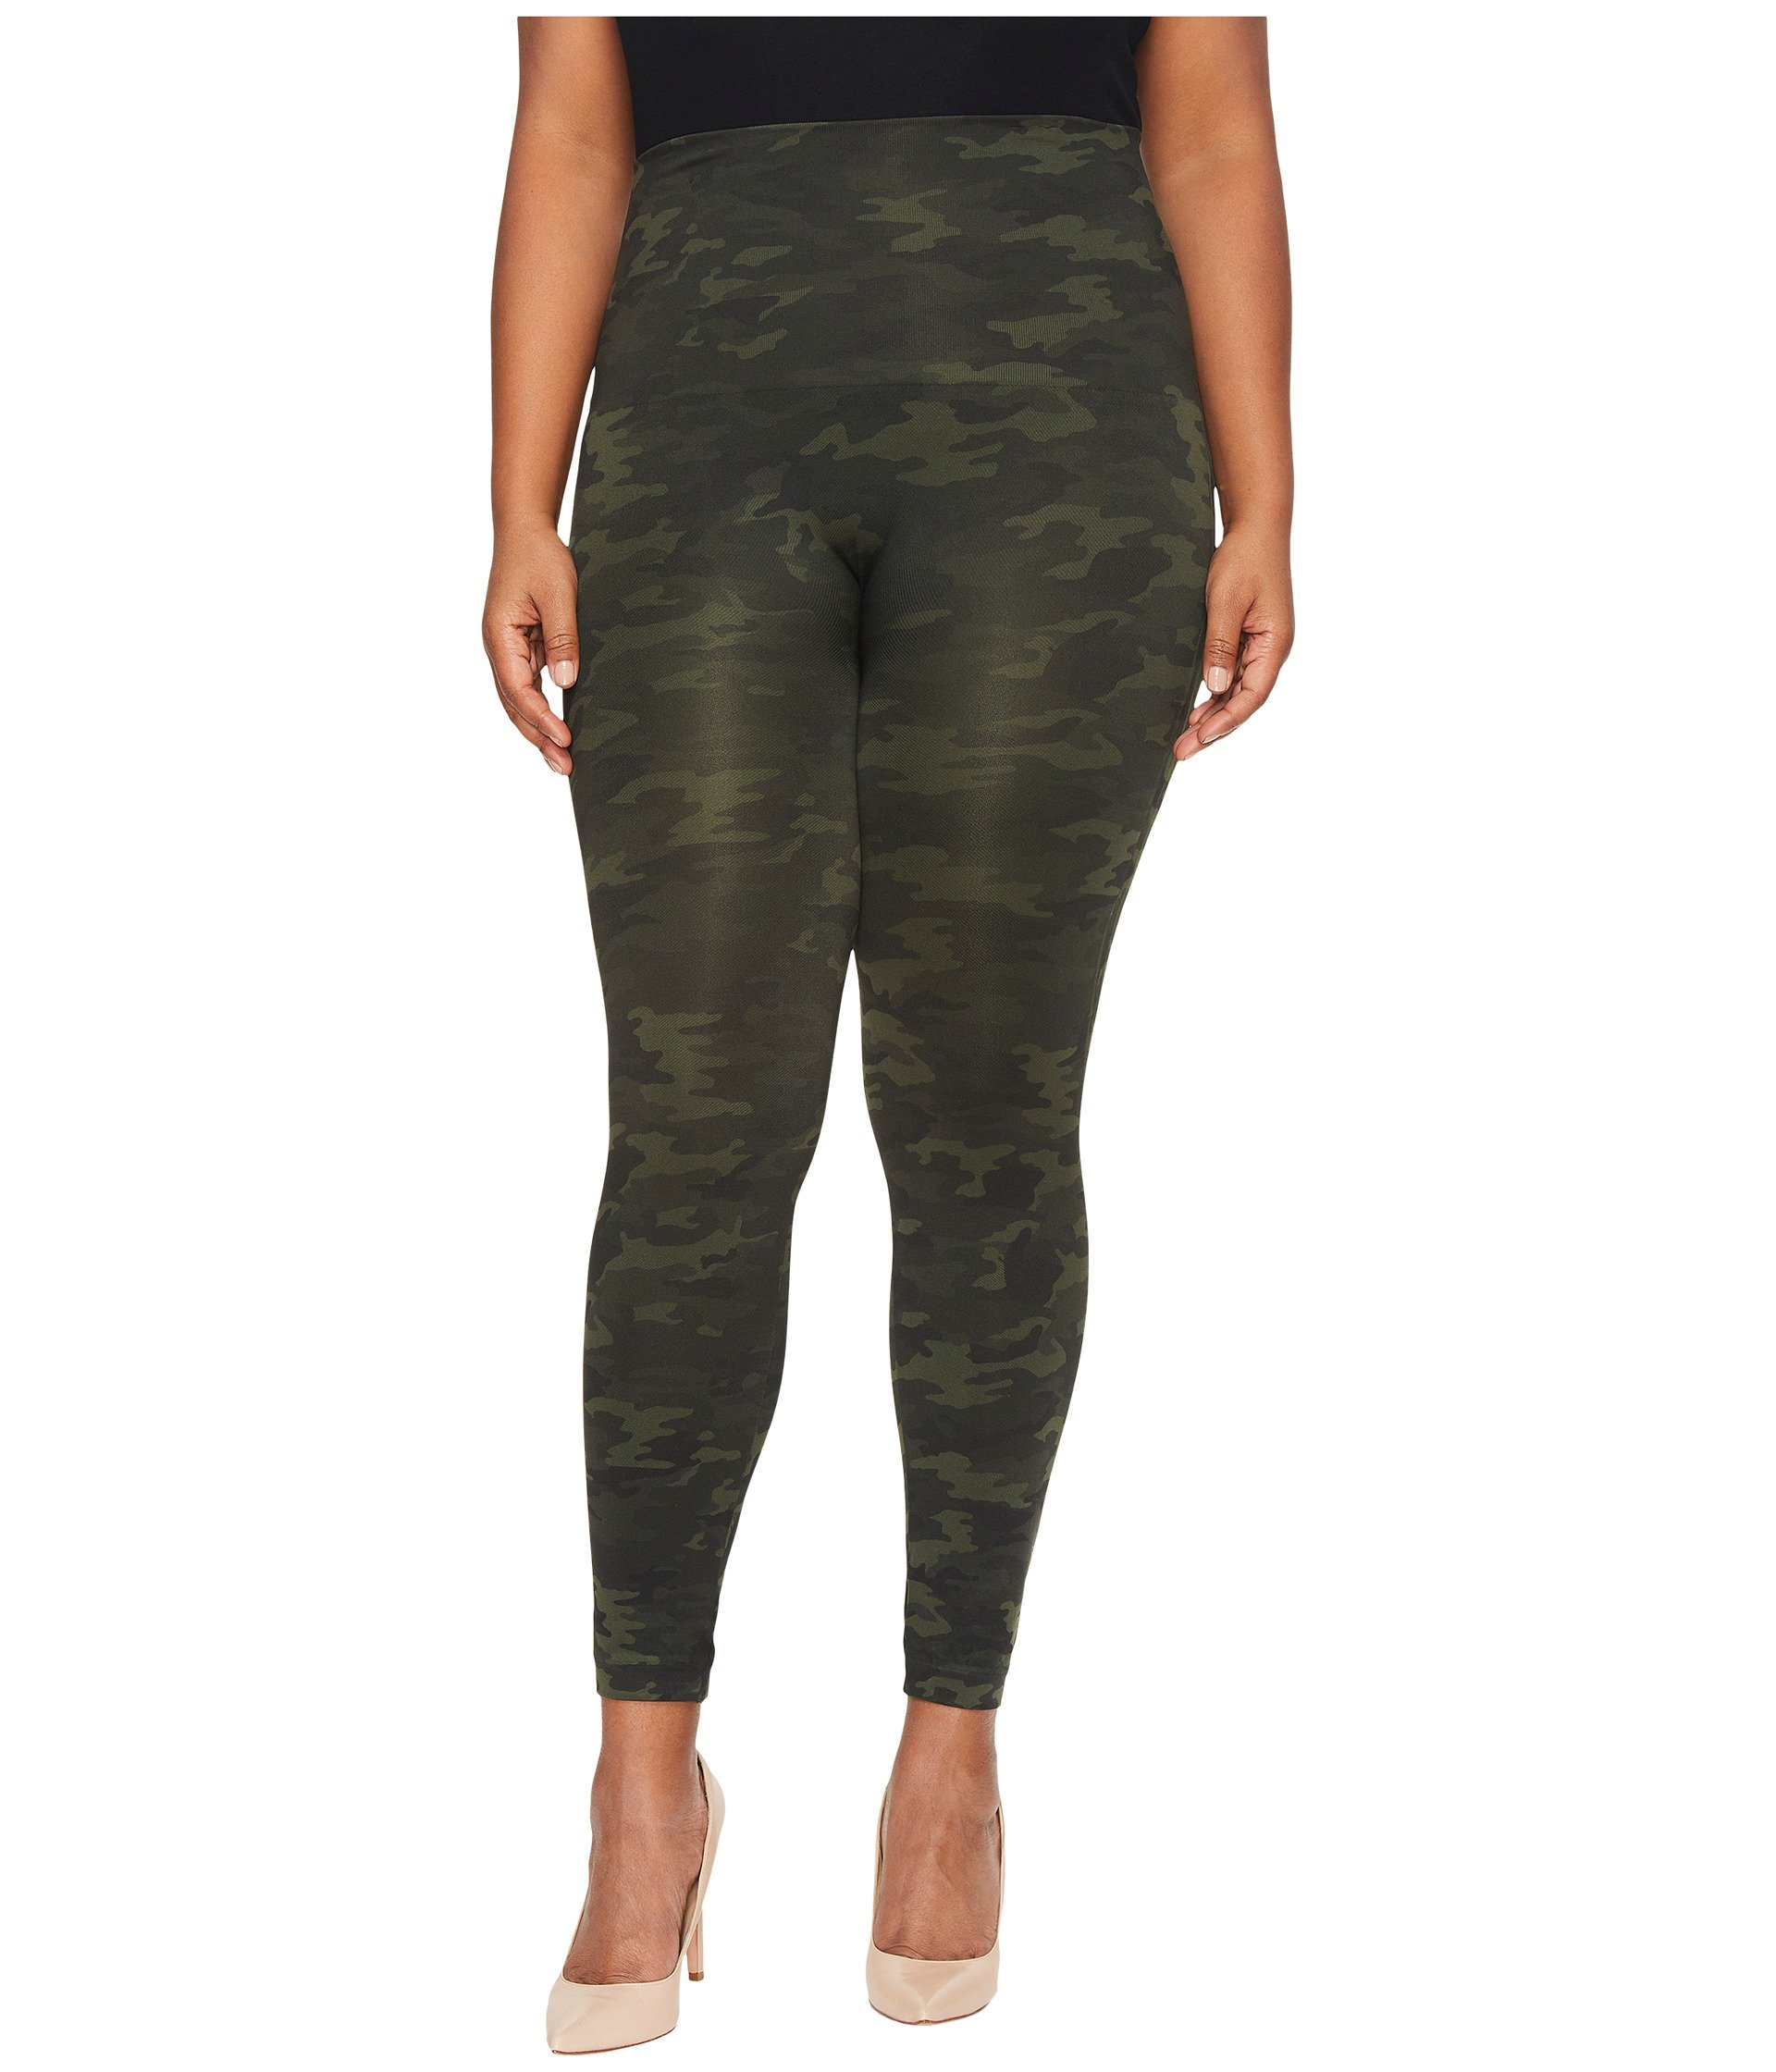 SPANX Look at Me Now Leggings - Plus Size, Green Camo, 3X